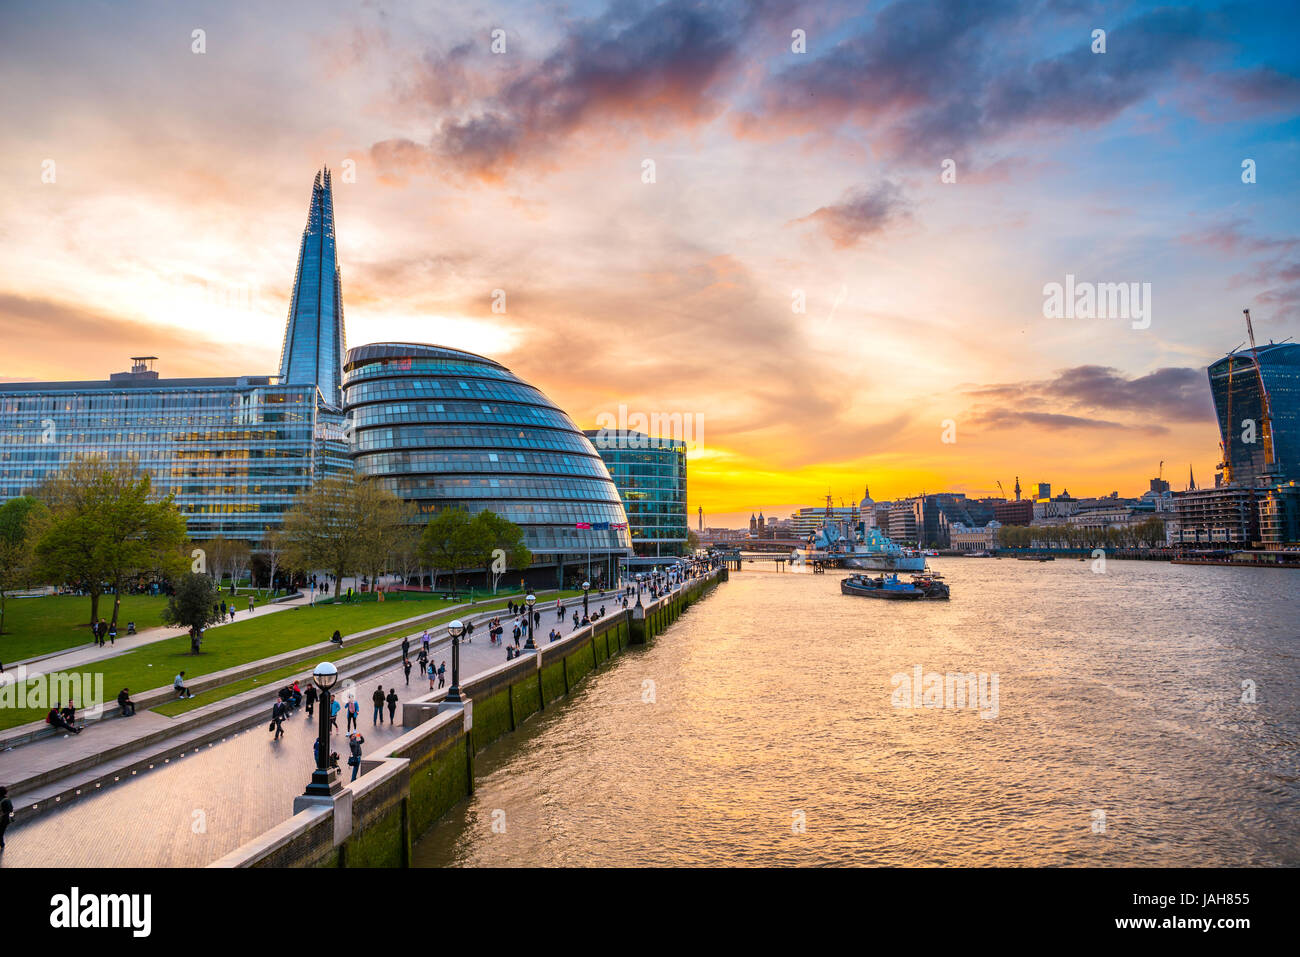 Riverside Promenade auf der Themse, Potters Fields Park, Skyline, London City Hall, The Shard, bei Sonnenuntergang, Stockbild